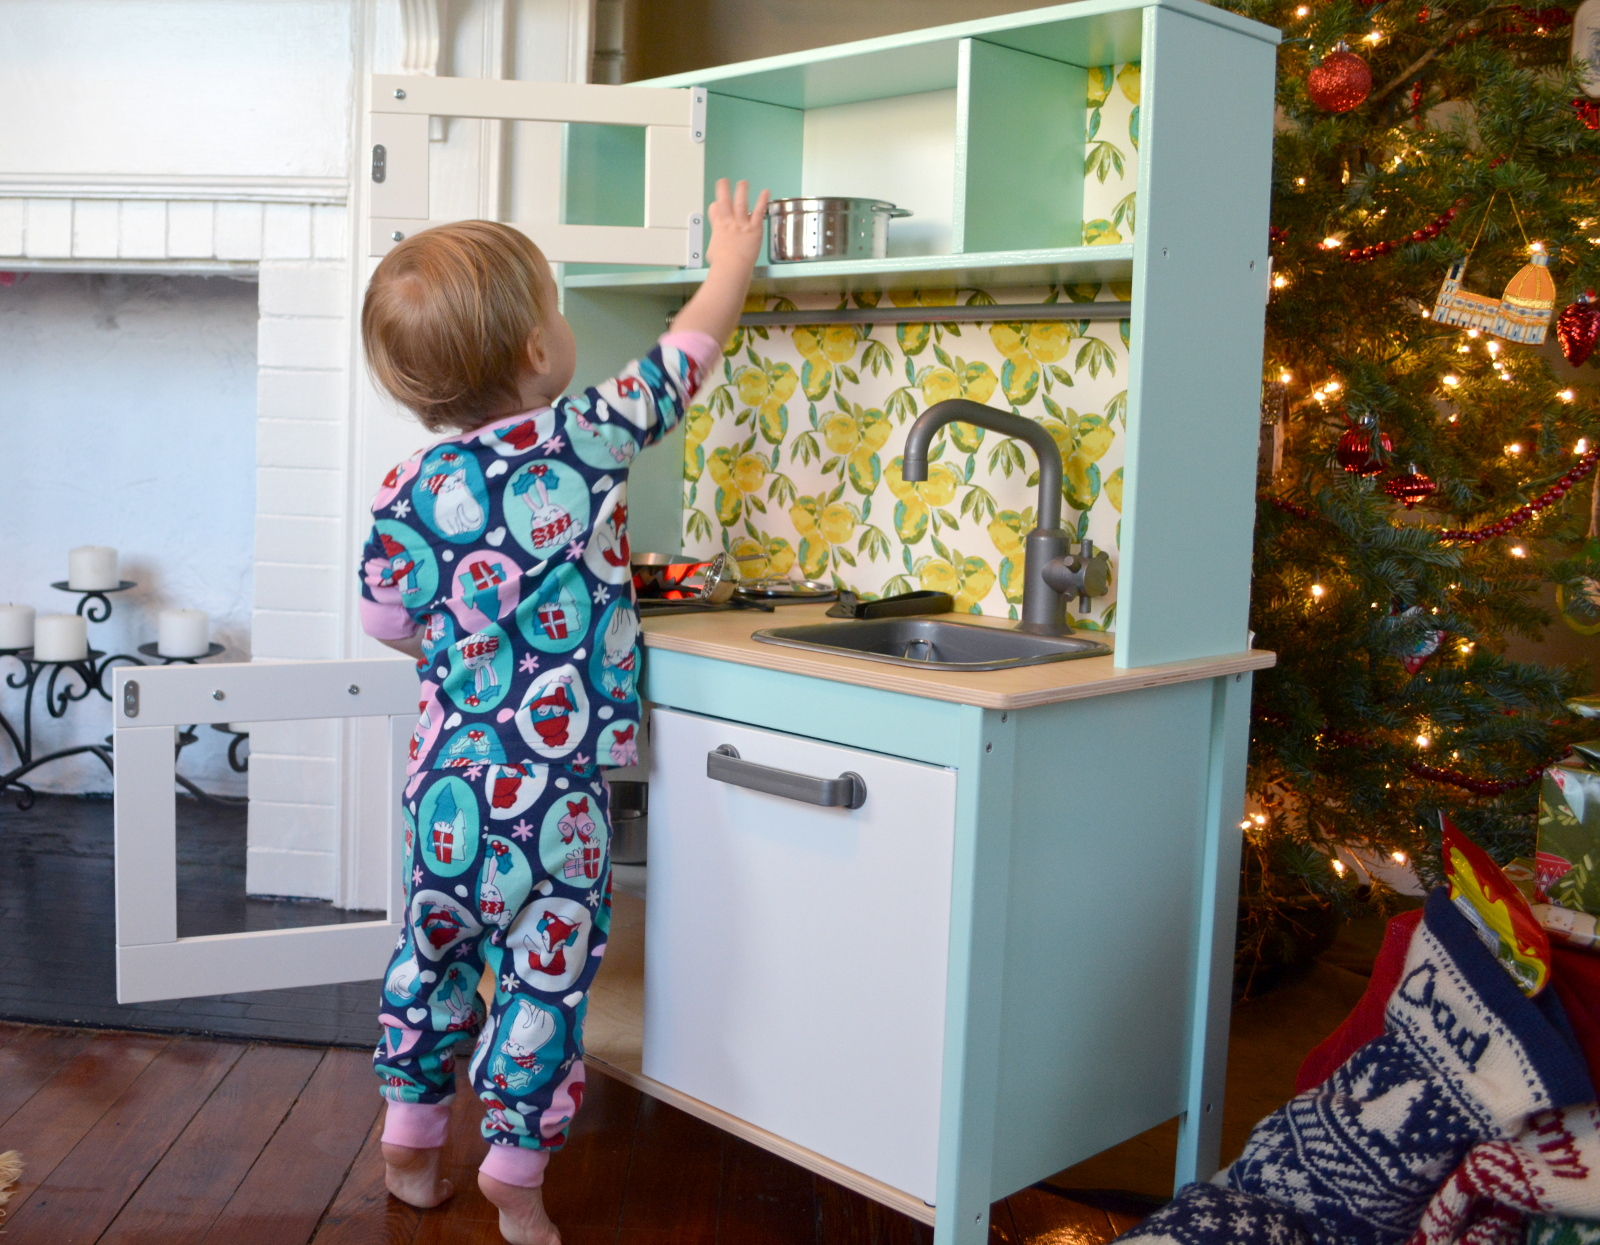 cozy birdhouse | ikea duktig kitchen makeover